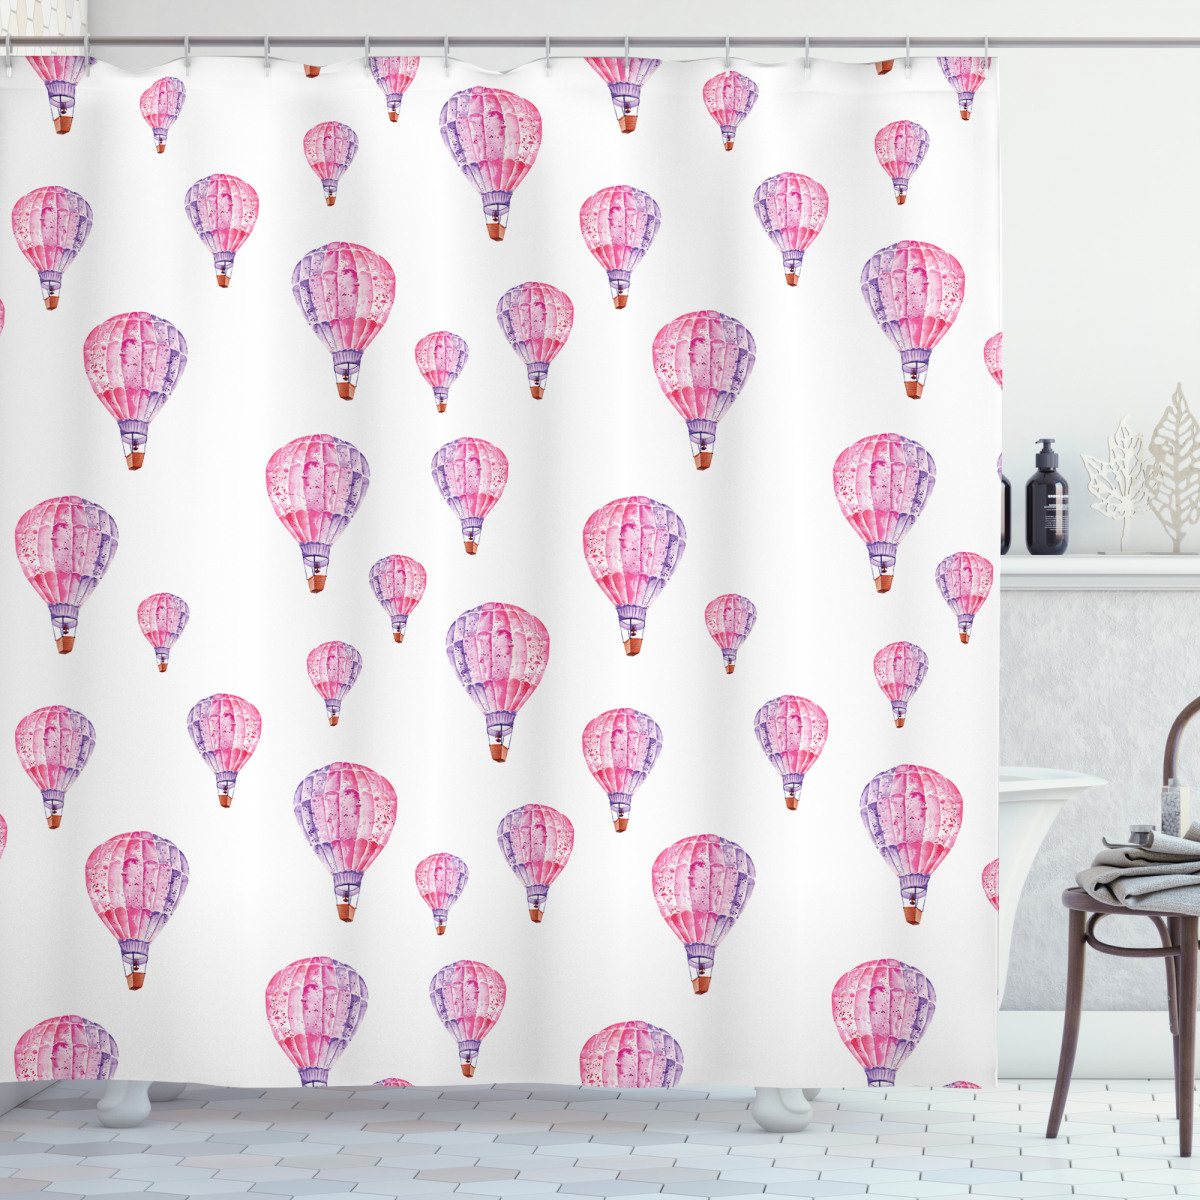 Polyester Fabric Spring Colored Flowers Shower Curtain Liner Bathroom Mat Set